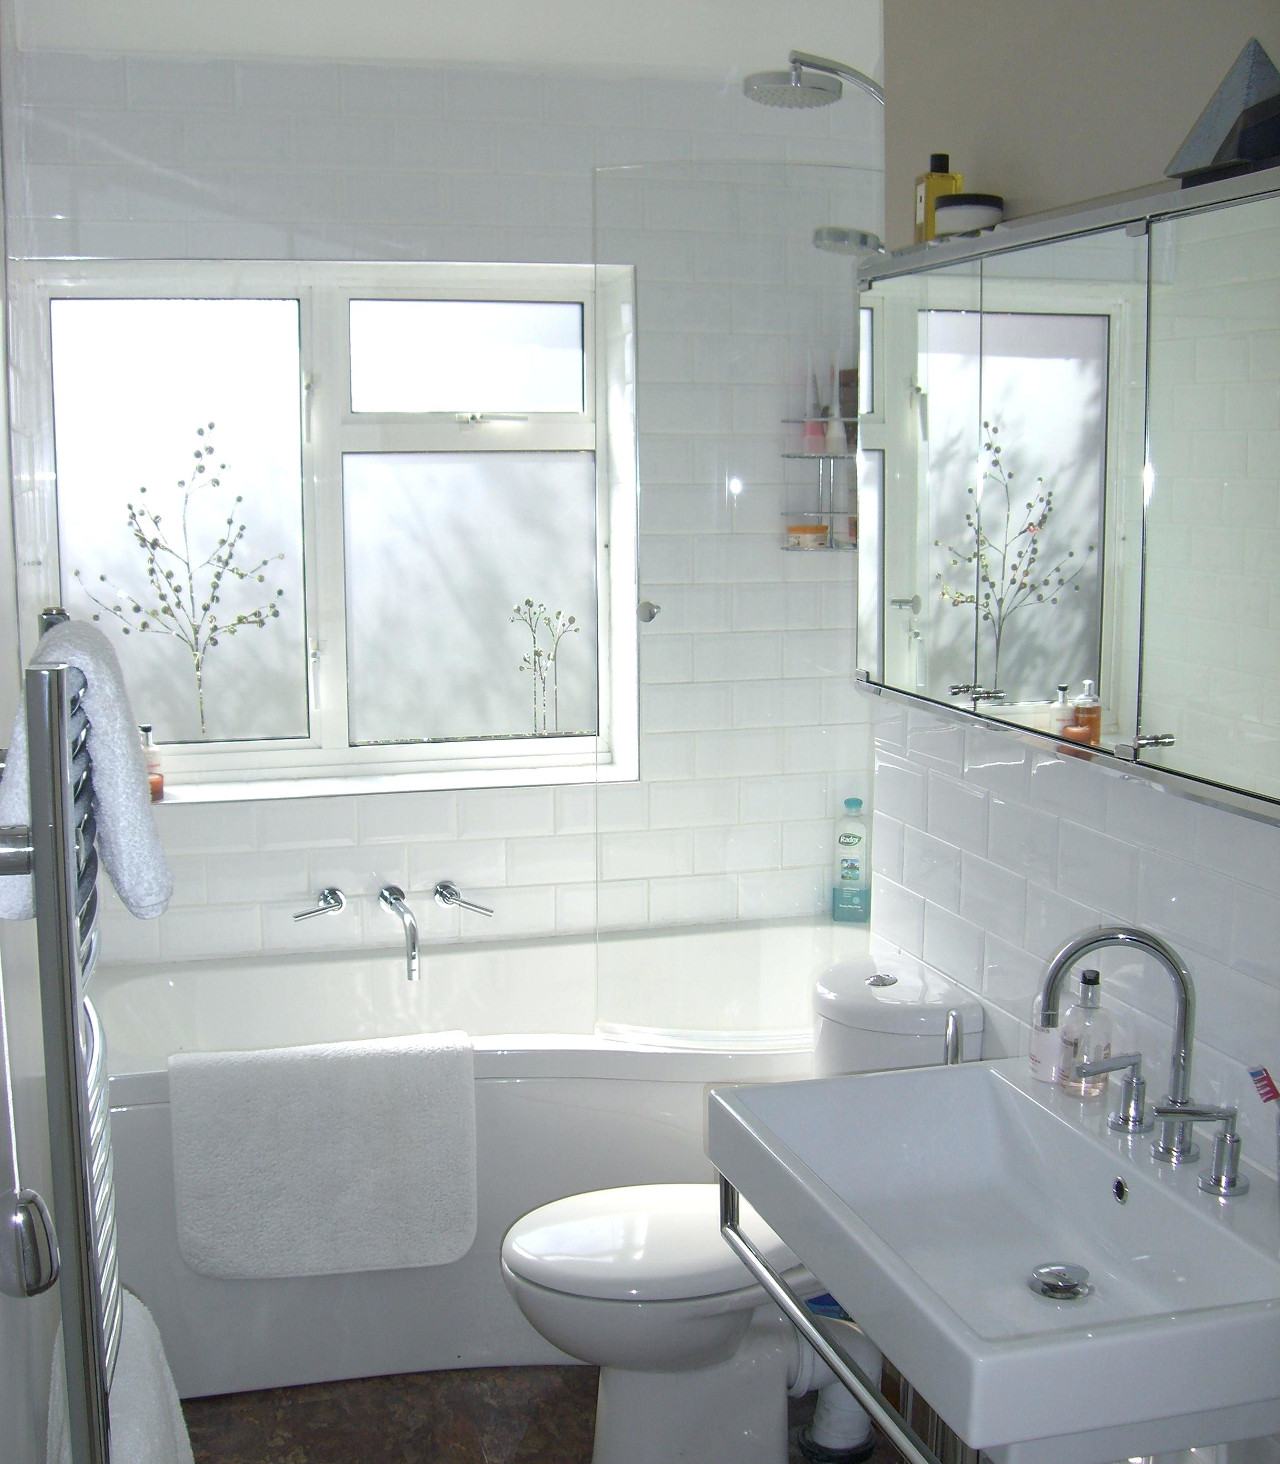 Photo Of Combine Shower And Tub Decoration In The Bathroom